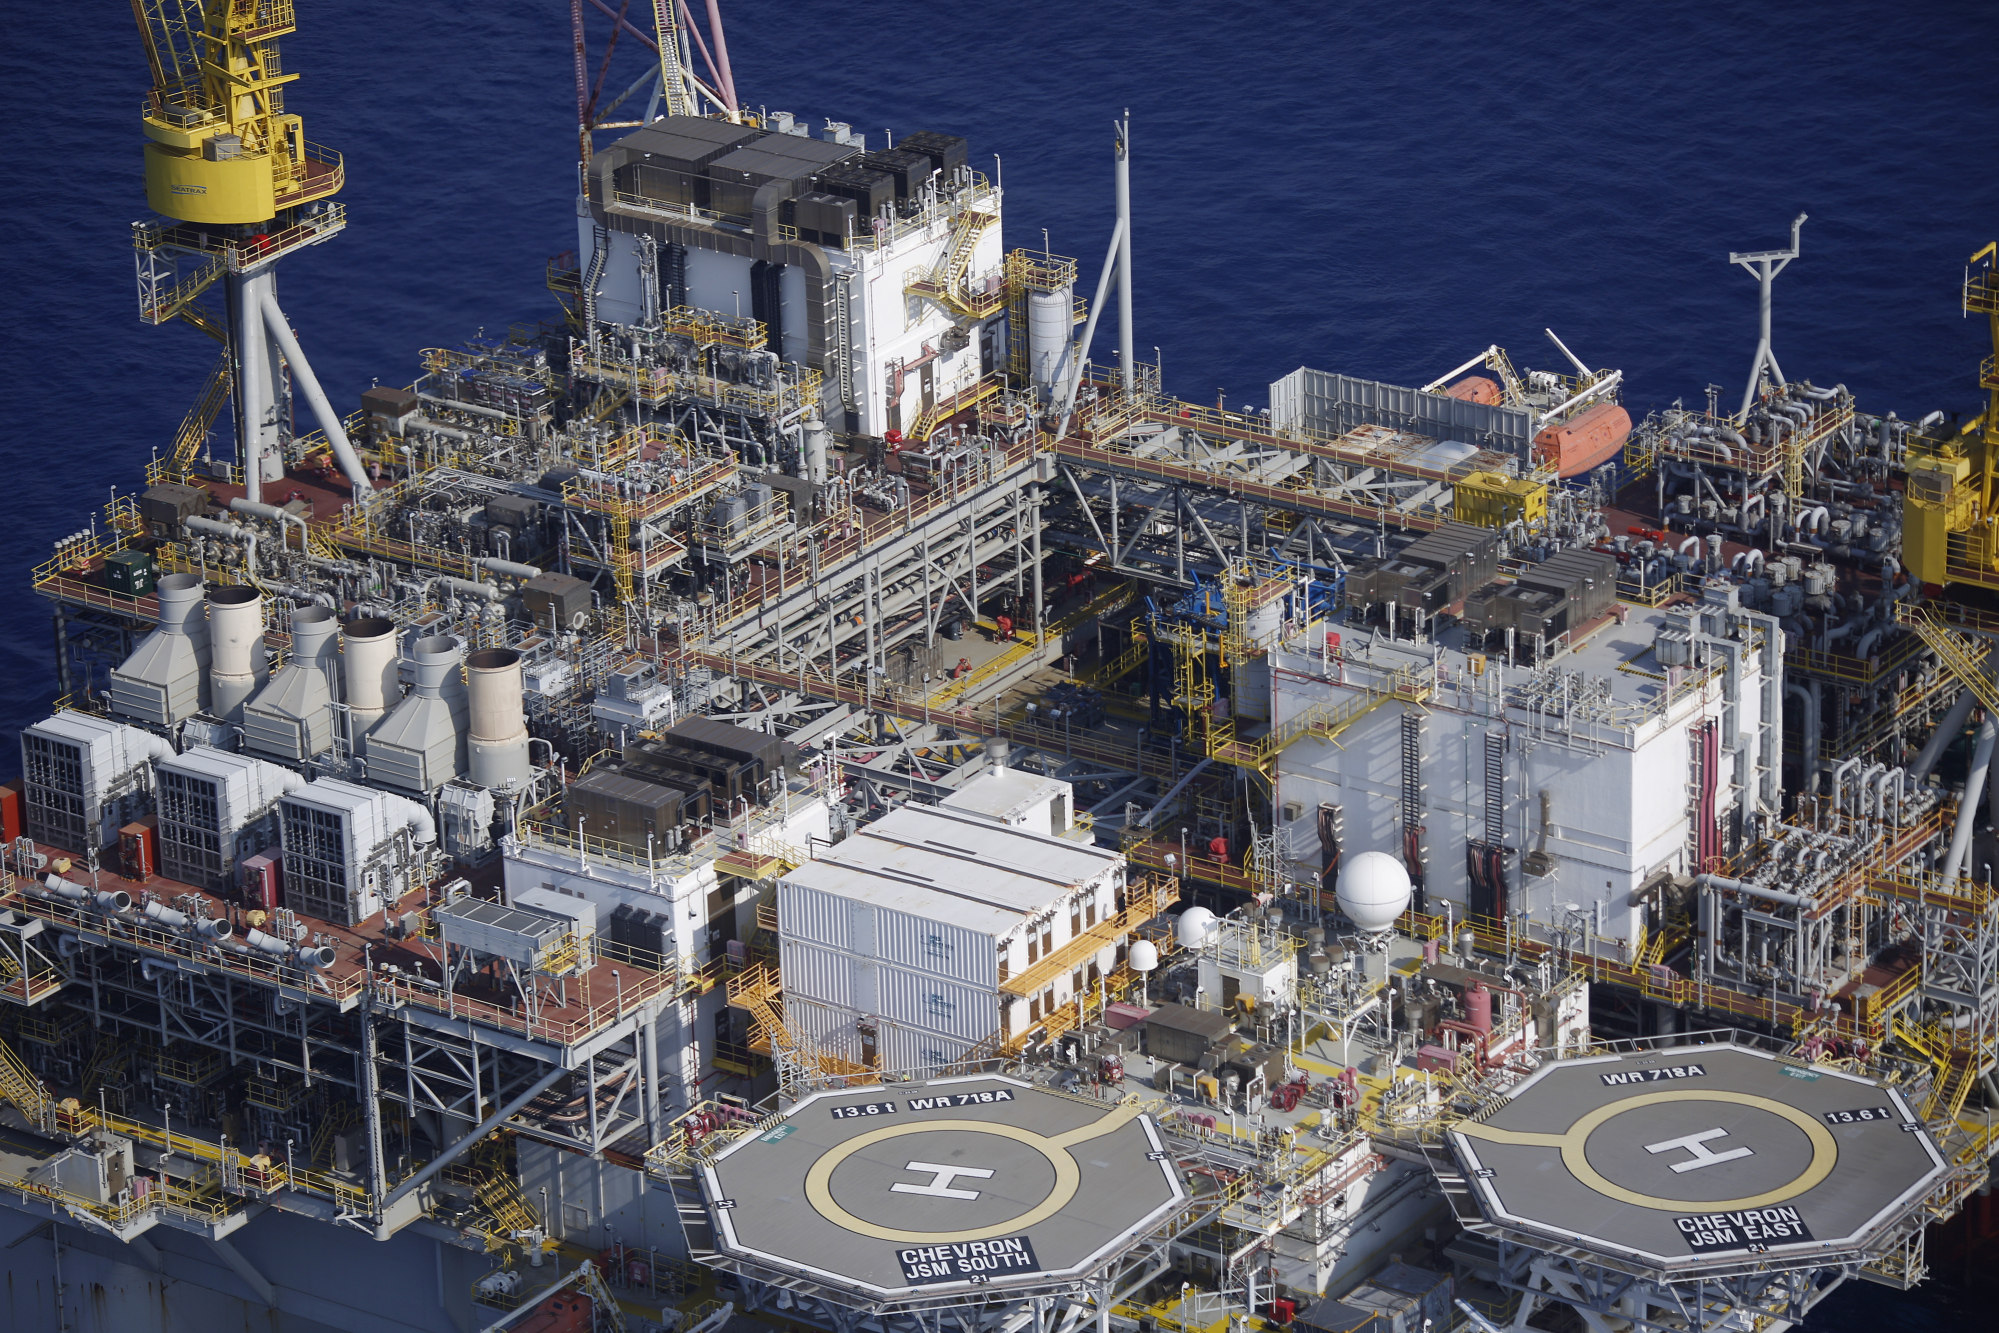 Helipads are seen aboard the Chevron Corp. Jack/St. Malo deepwater oil platform in the Gulf of Mexico off the coast of Louisiana, U.S., on Friday, May 18, 2018. While U.S. shale production has been dominating markets, a quiet revolution has been taking place offshore. The combination of new technology and smarter design will end much of the overspending that's made large troves of subsea oil barely profitable to produce, industry executives say. Photographer: Luke Sharrett/Bloomberg